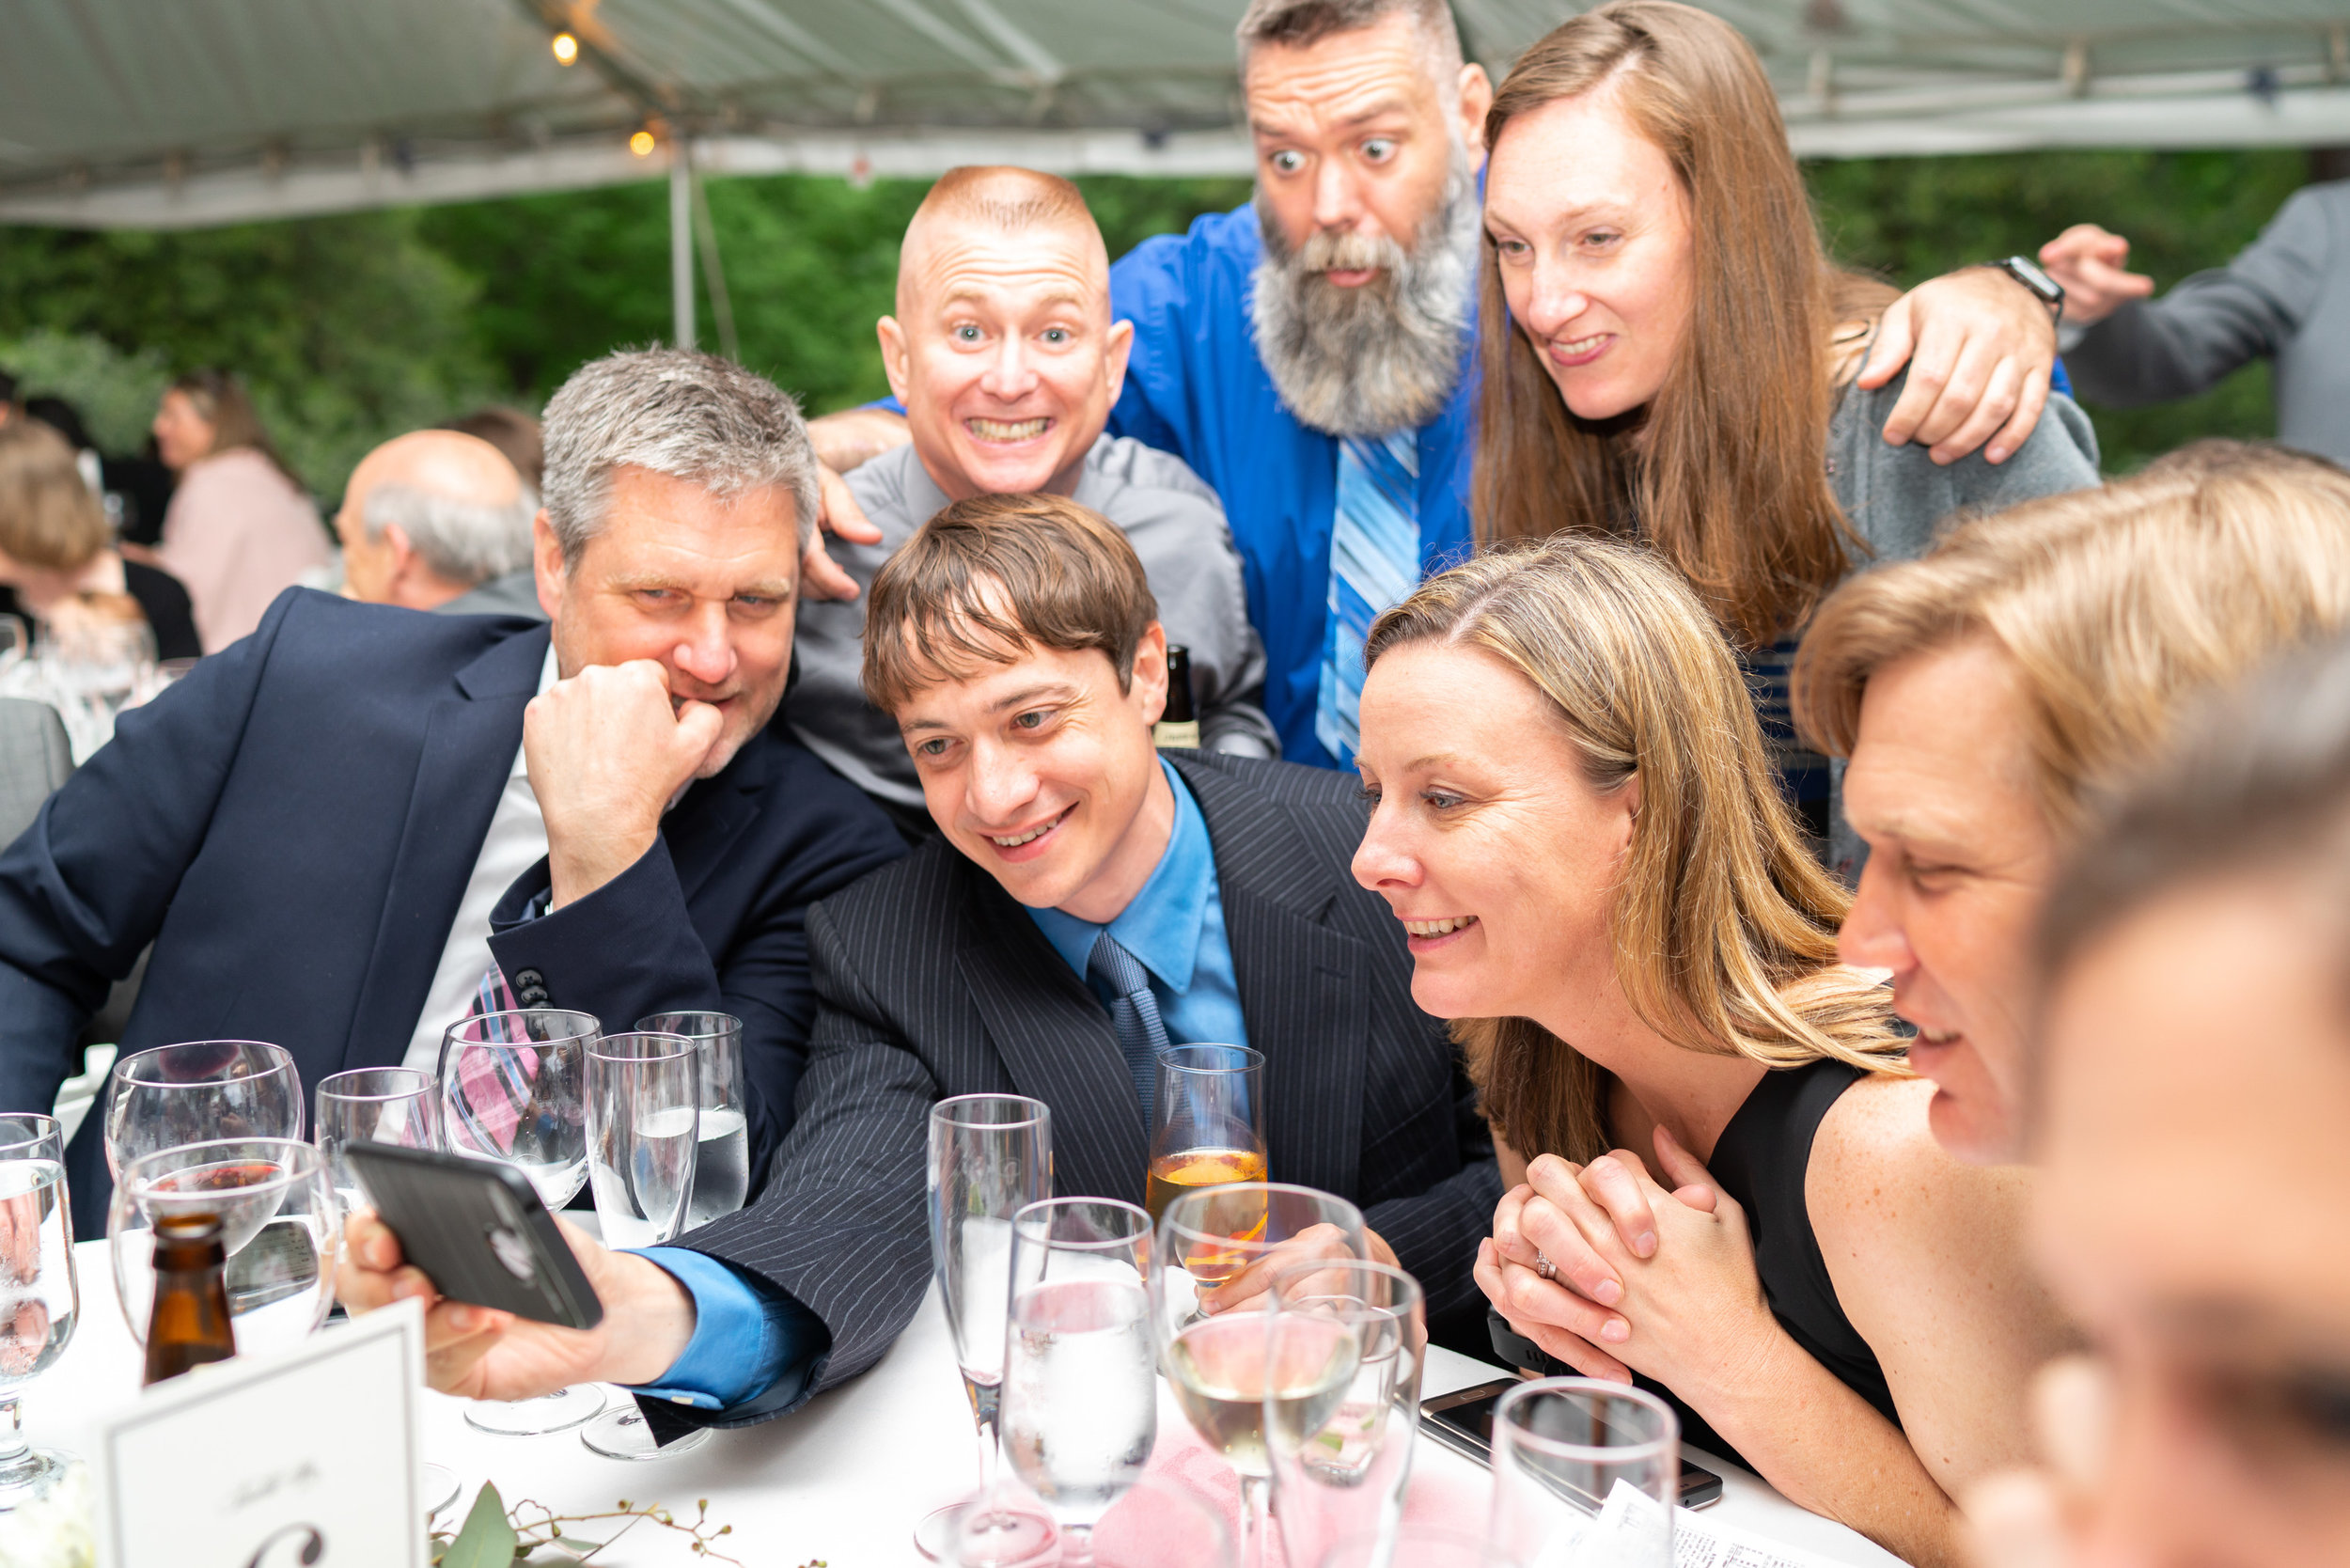 Guests and groom watching the Kentucky Derby at Hendry House summer wedding